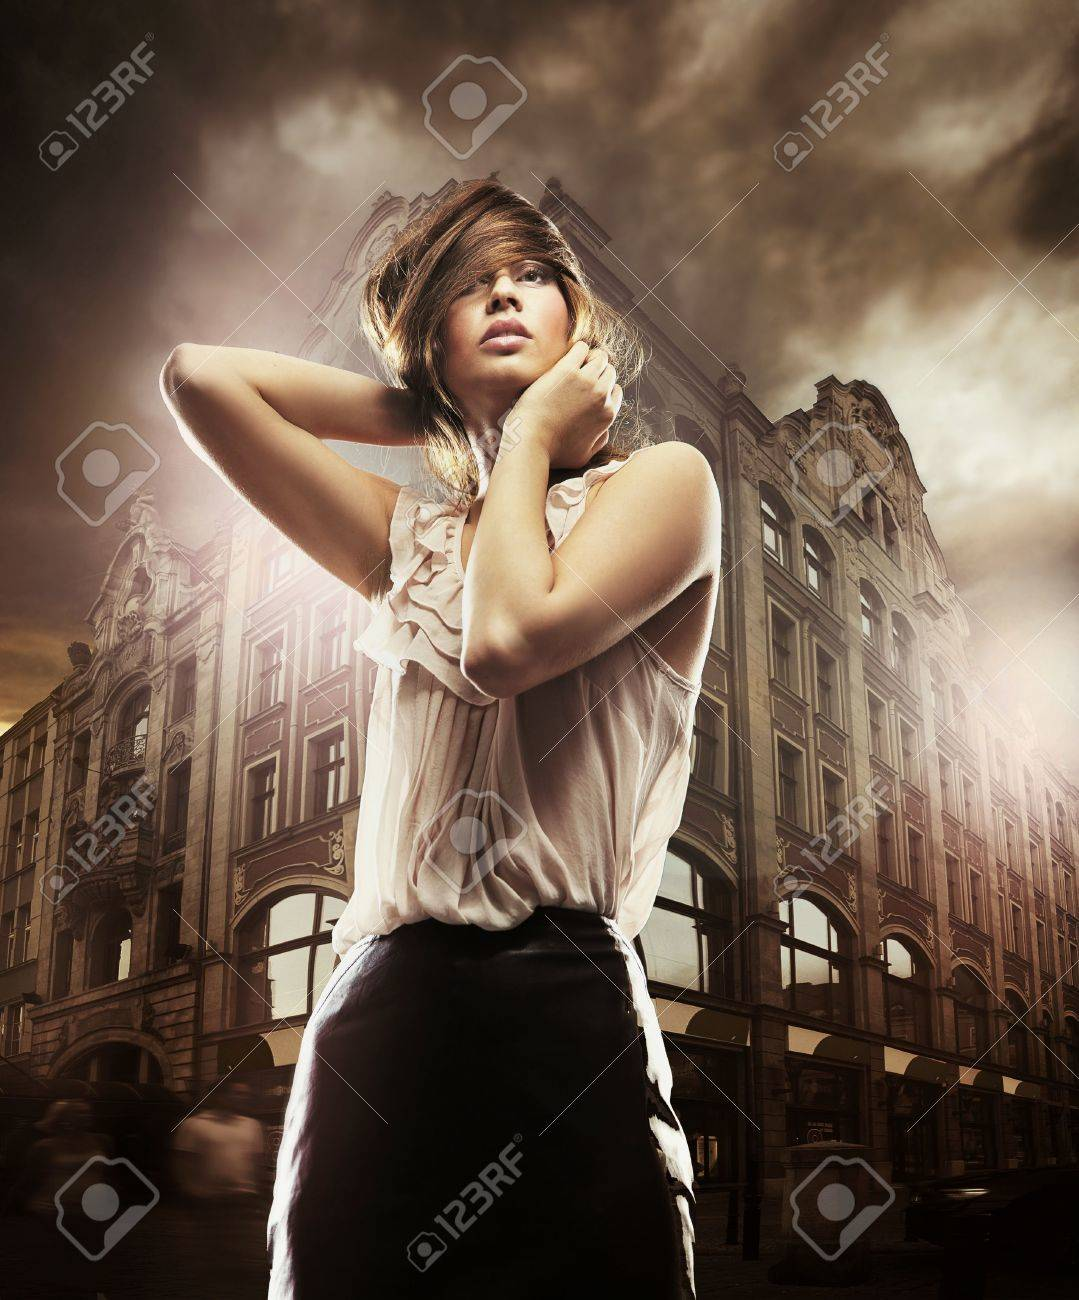 Fine art photo of a beautiful woman in front of a building Stock Photo - 8764568